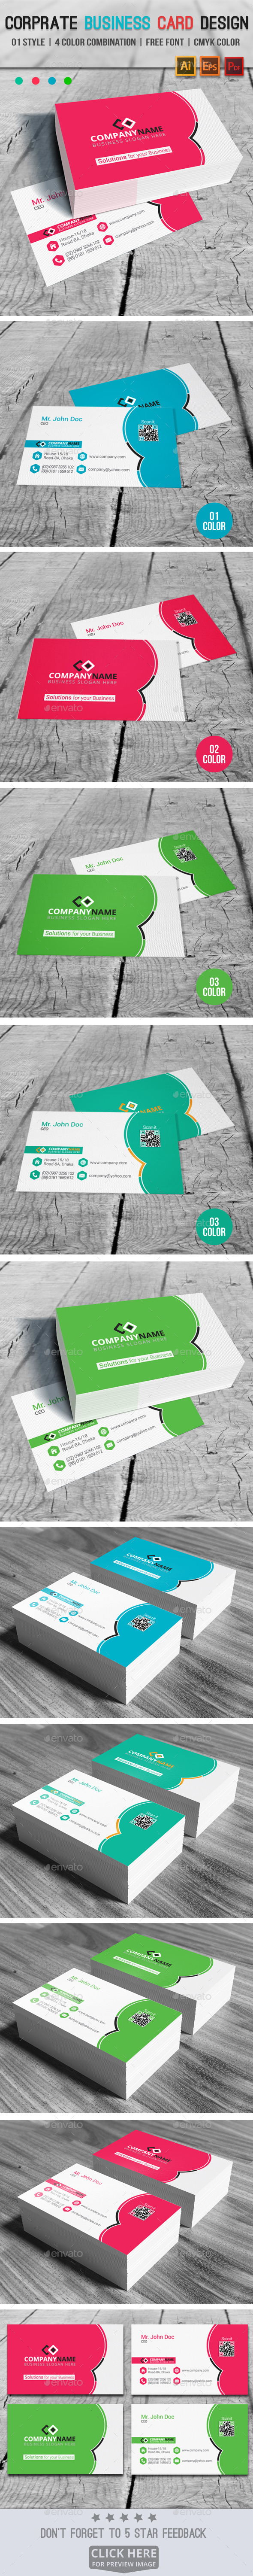 GraphicRiver Corprate Business Card Design V03 9030984